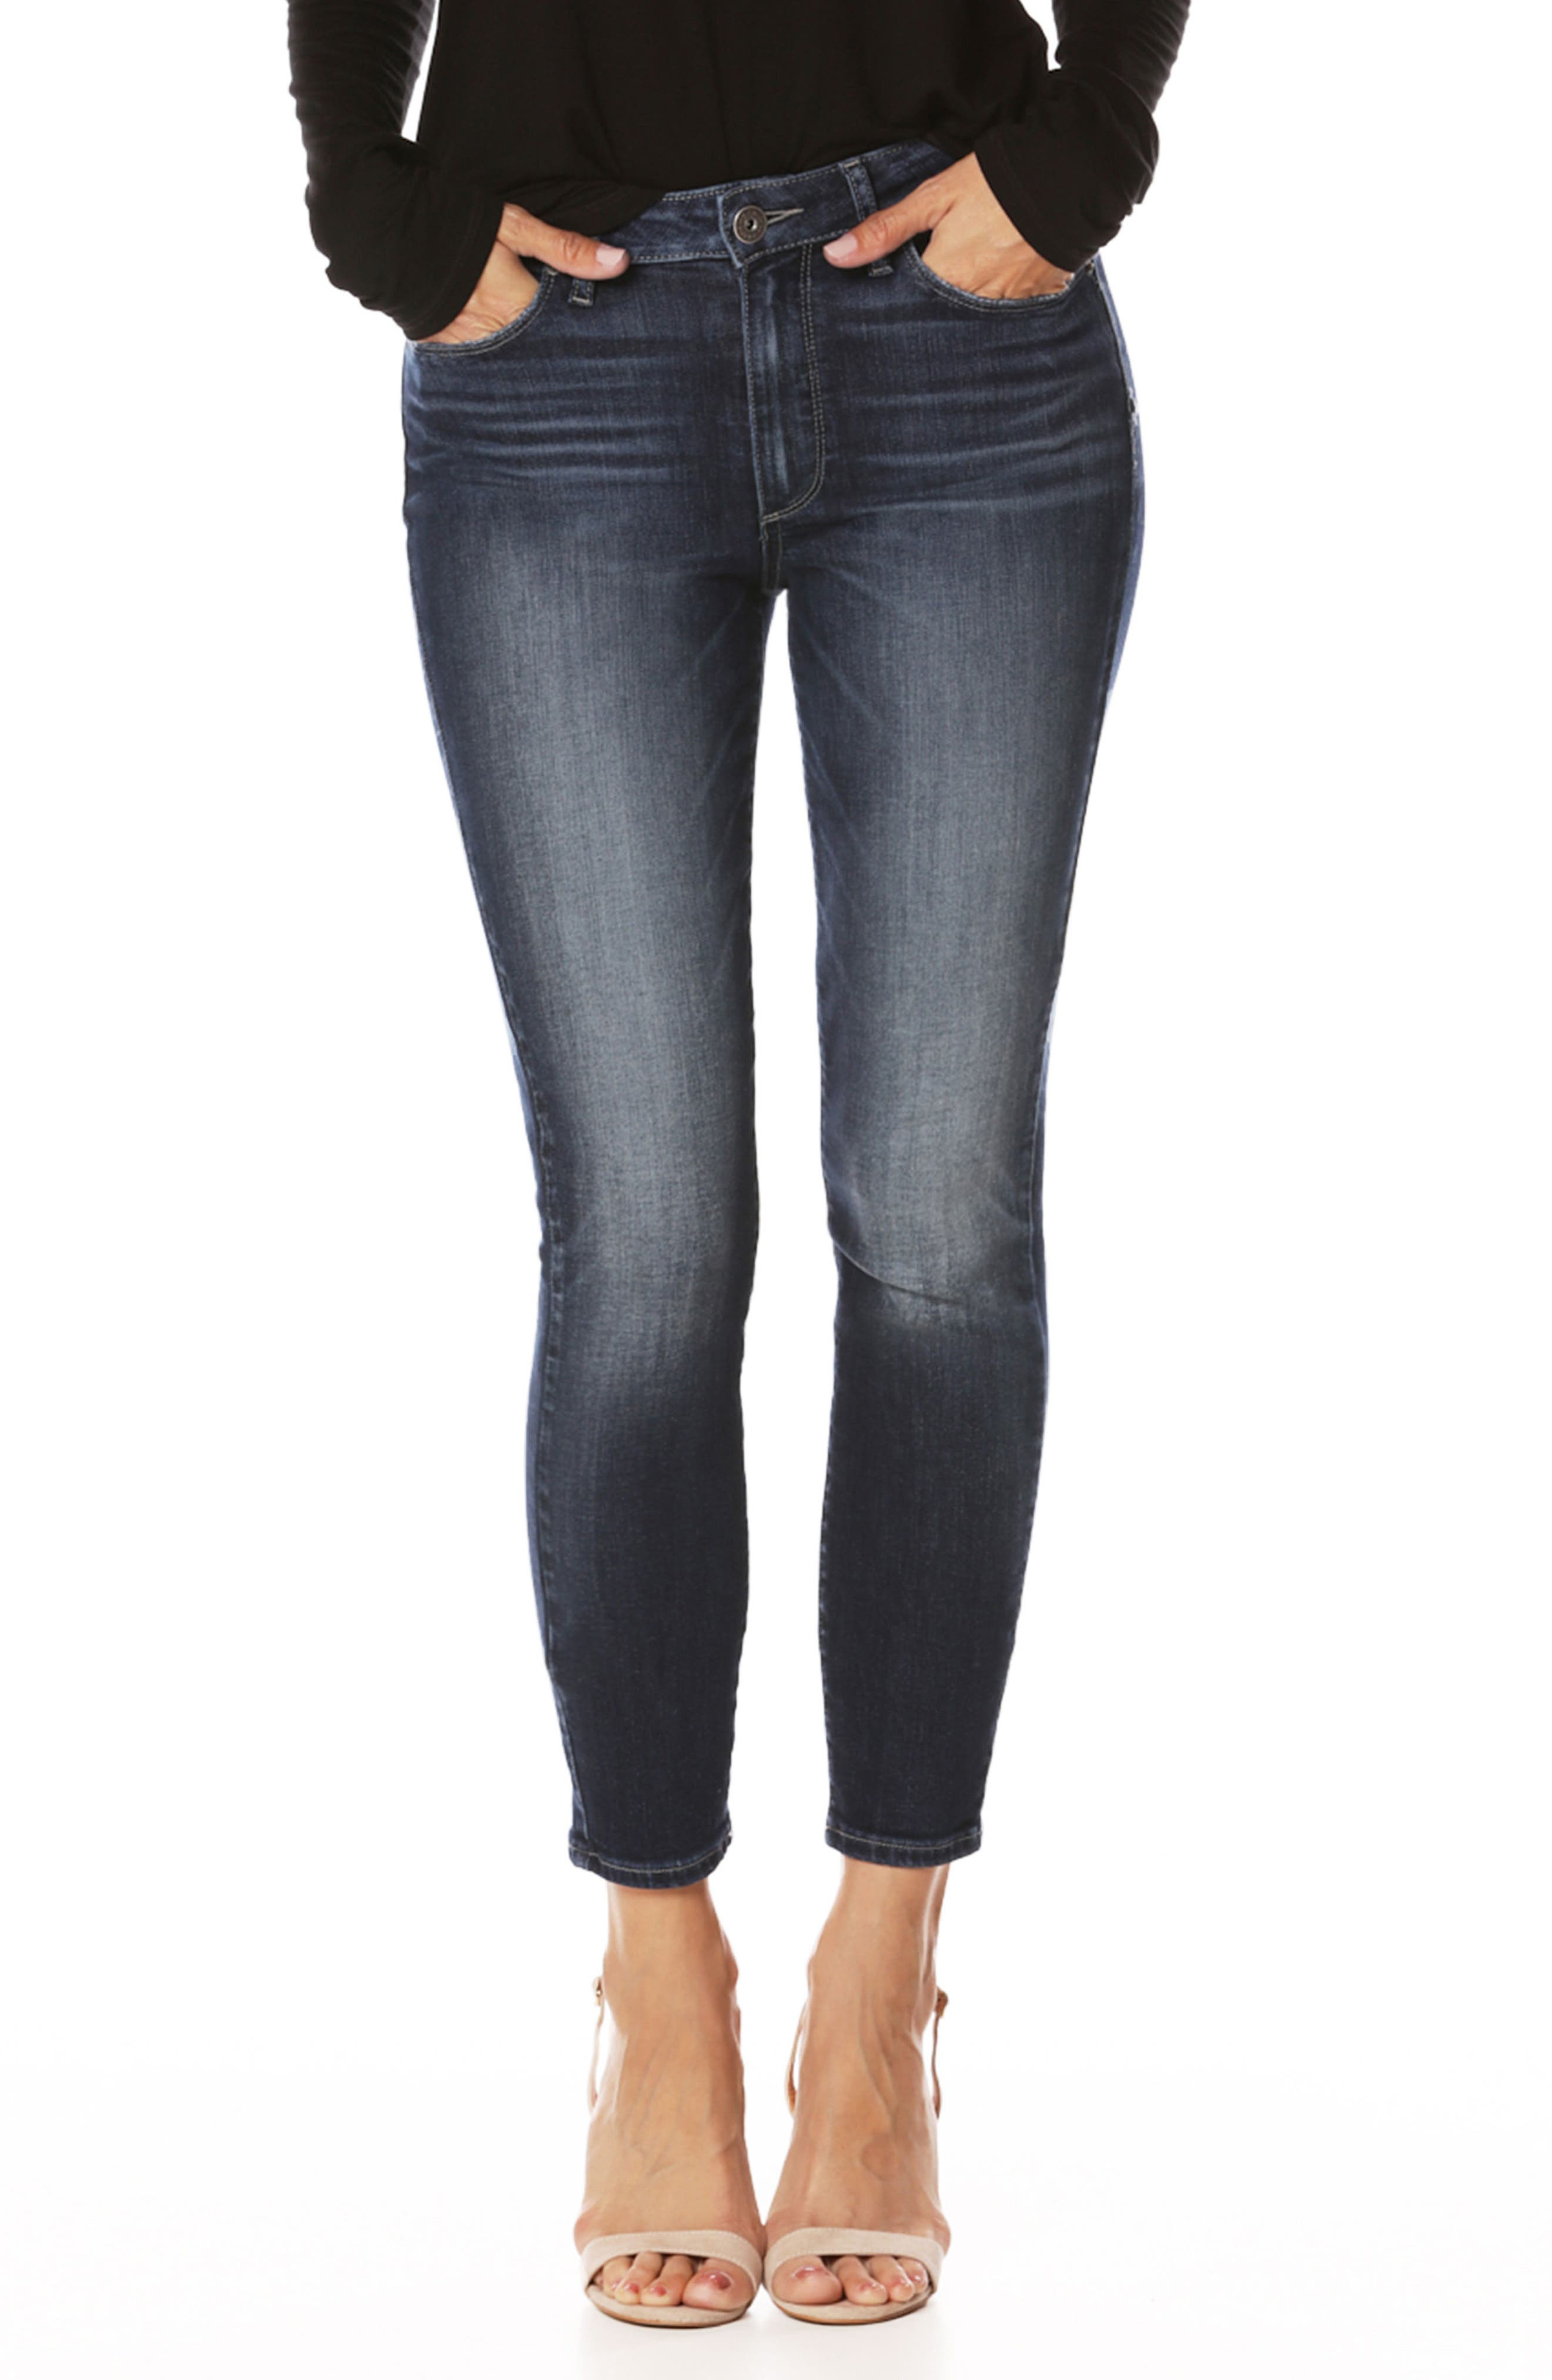 Transcend Vintage - Hoxton High Waist Crop Ultra Skinny Jeans,                             Main thumbnail 1, color,                             400